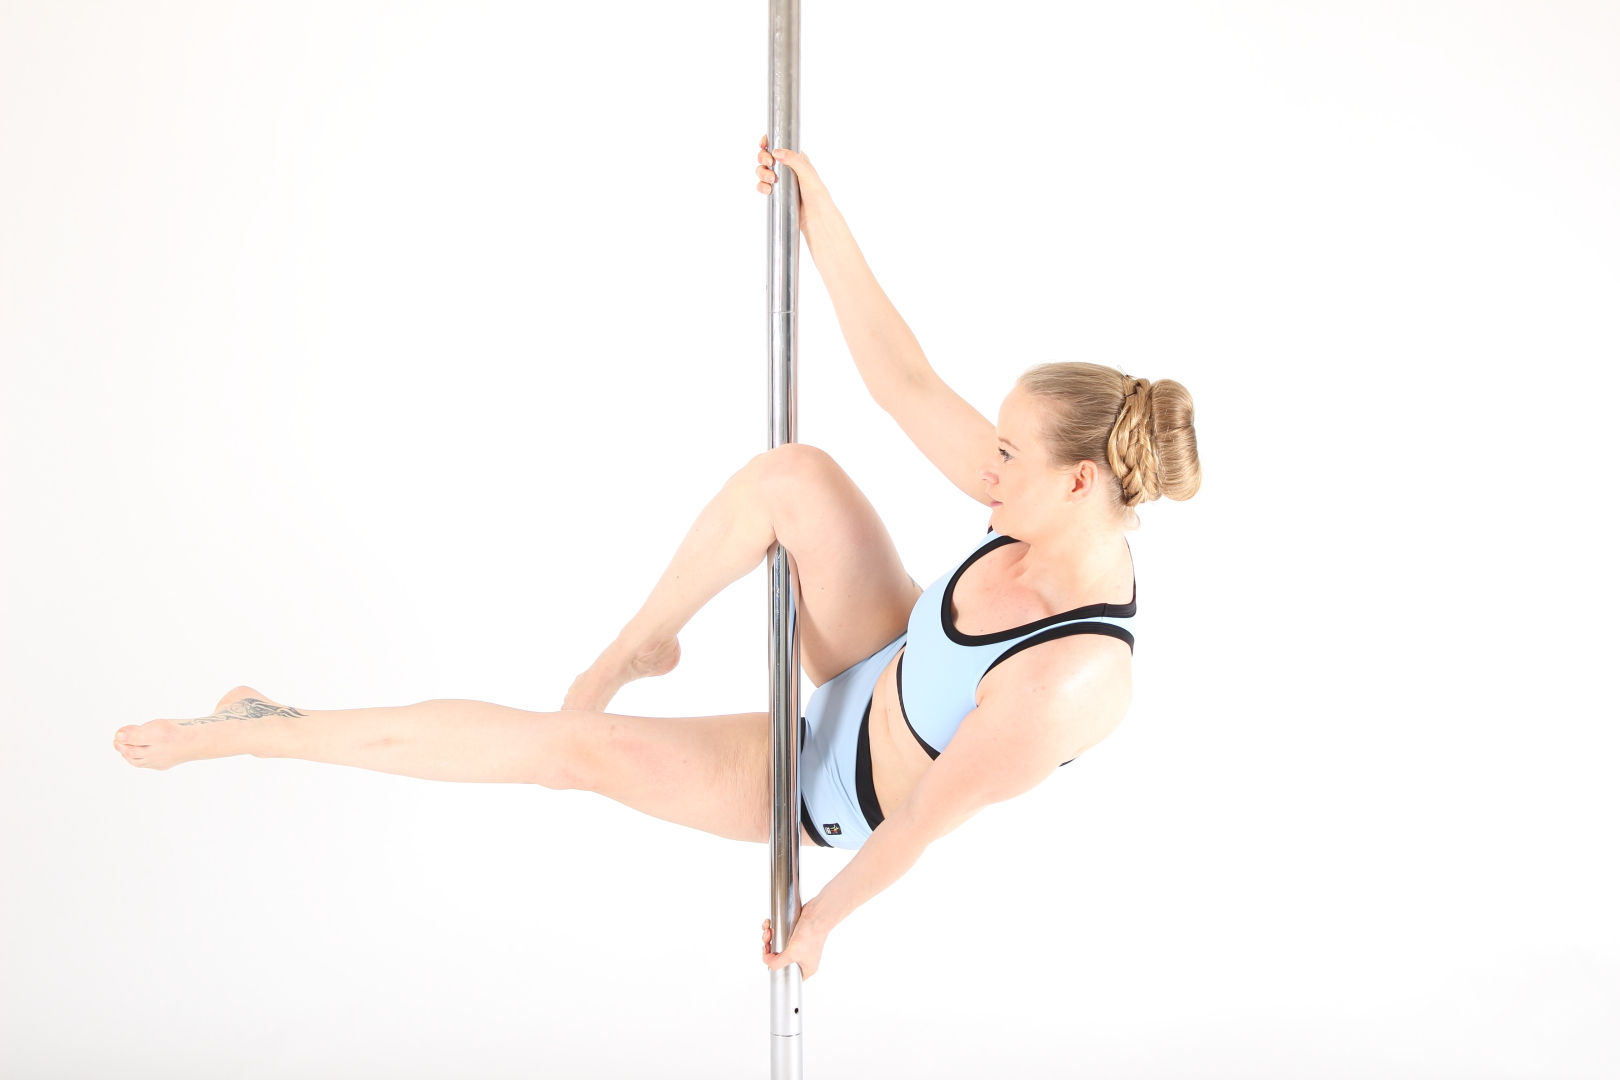 Level 1 Star Pole Tricks